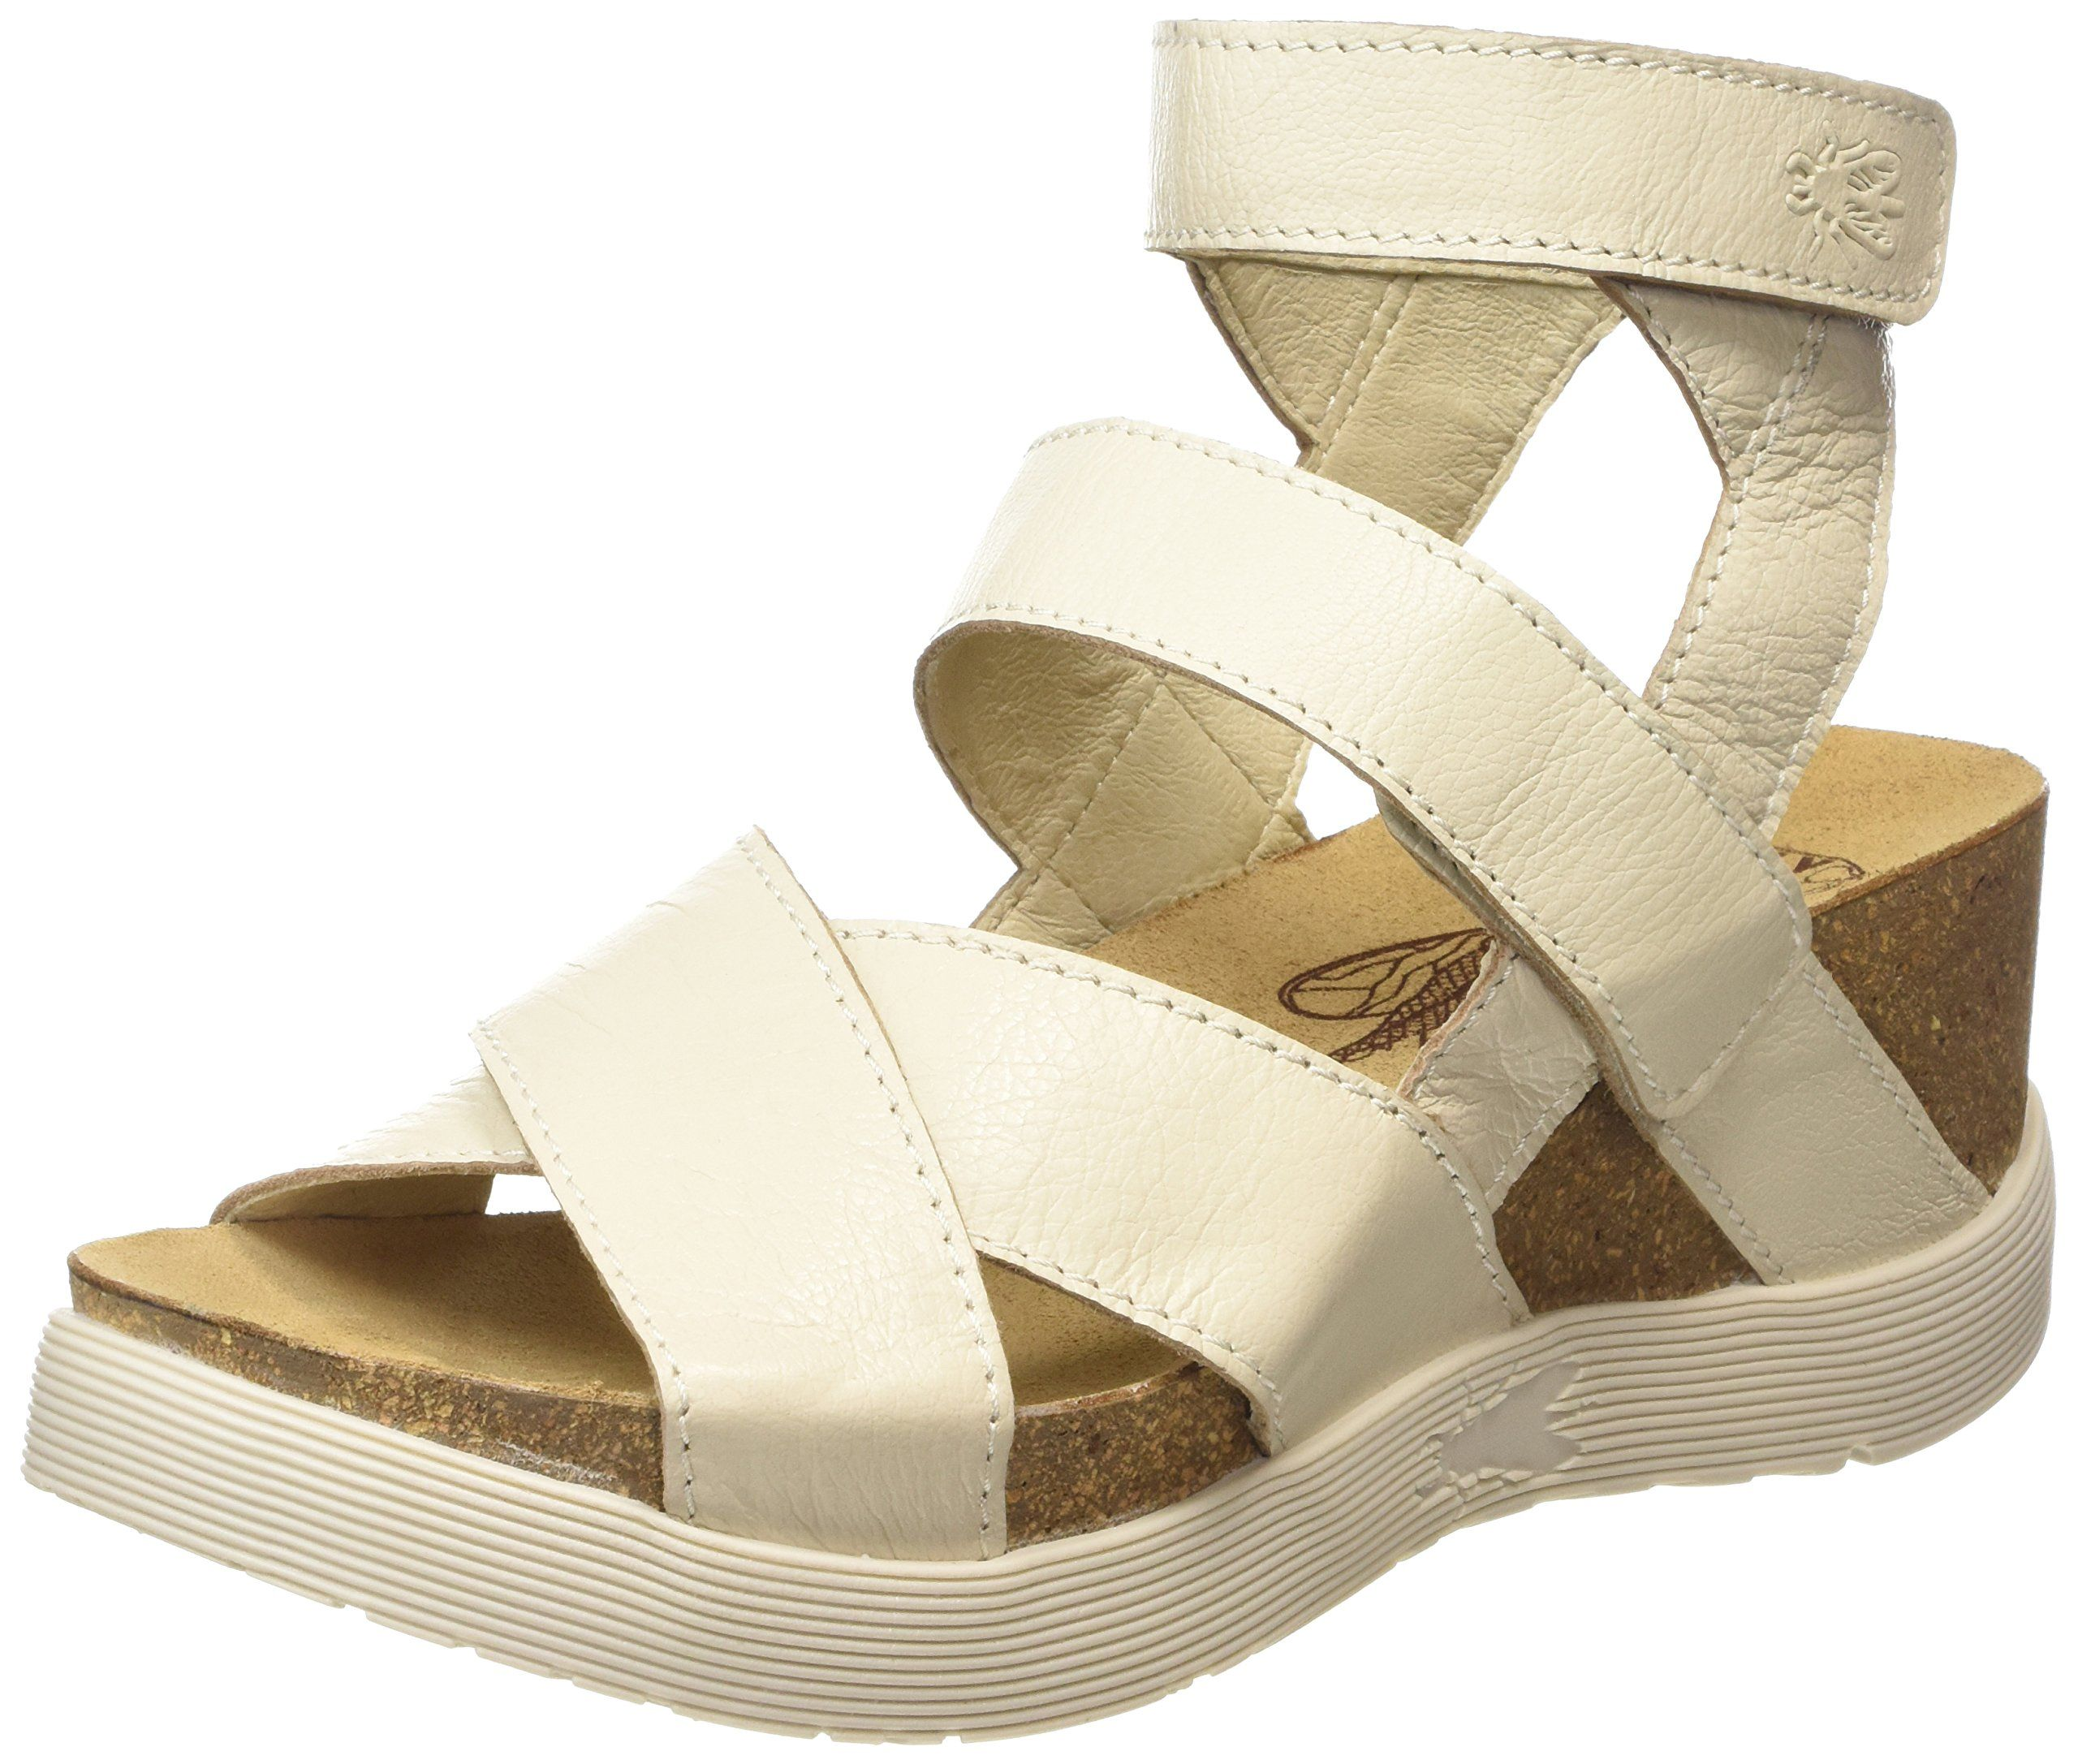 95dd07373bb FLY London Women s Wege669fly Platform Sandal